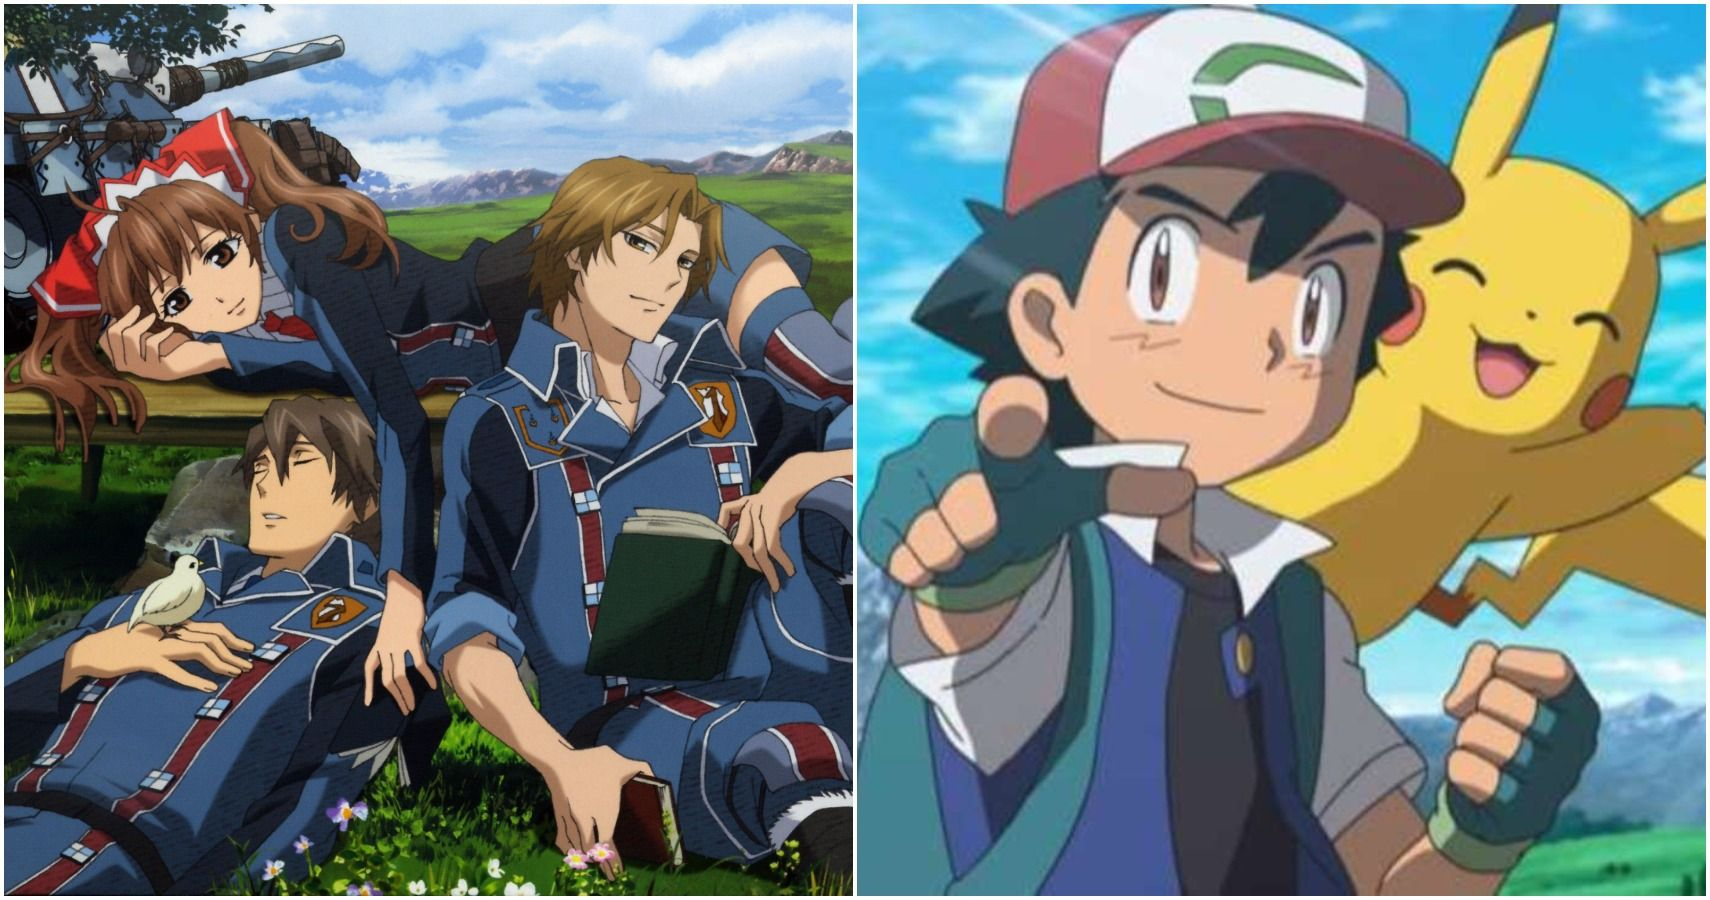 10 Best Anime TV Shows Based On Video Games, Ranked | CBR